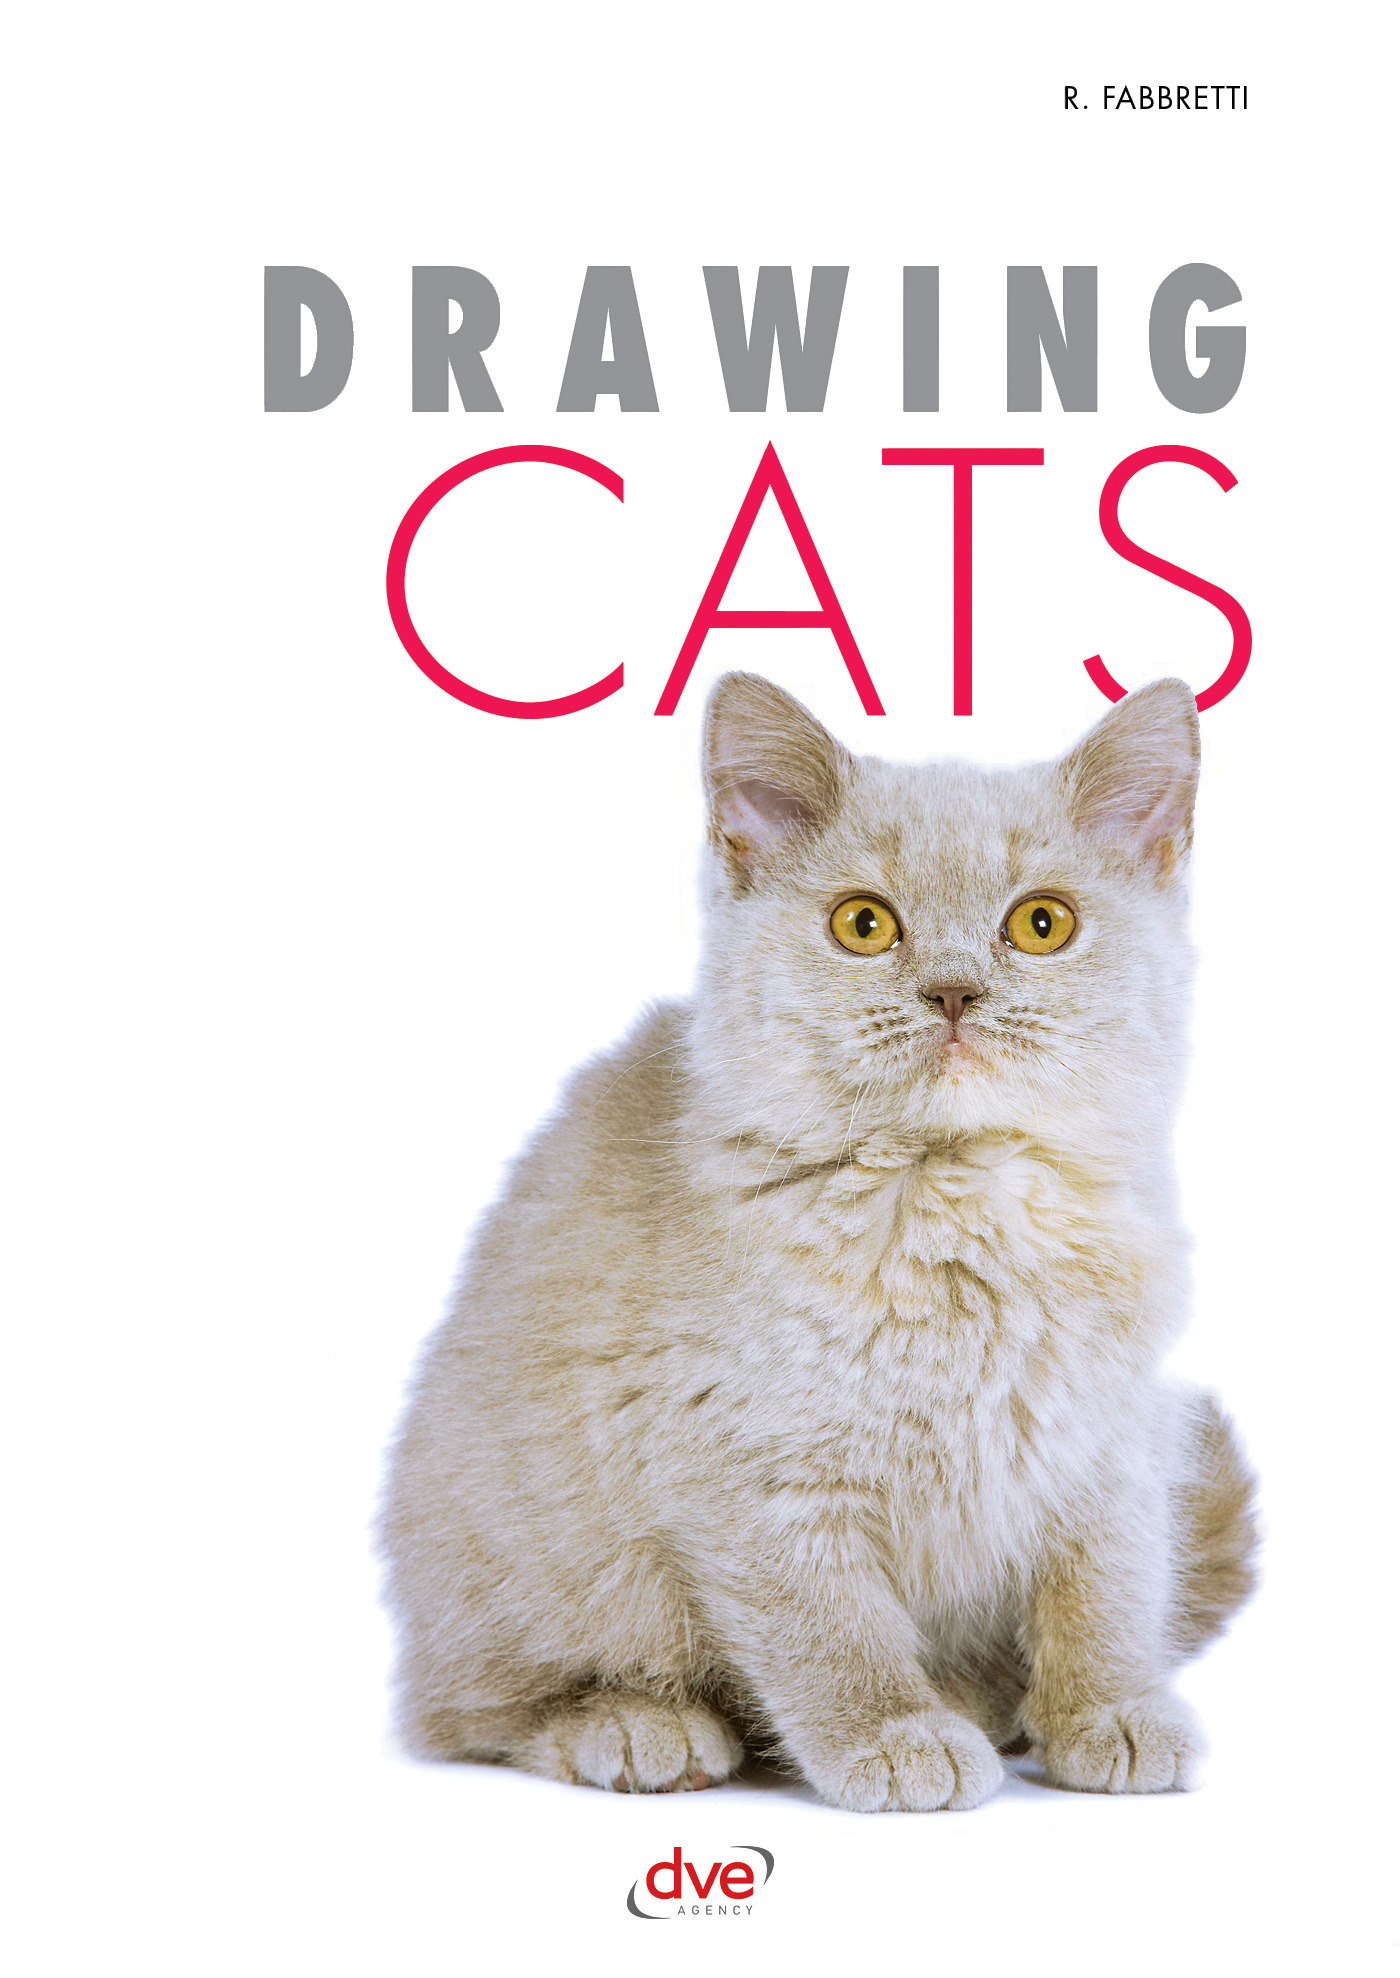 Fabbretti, Roberto - Drawing Cats, ebook